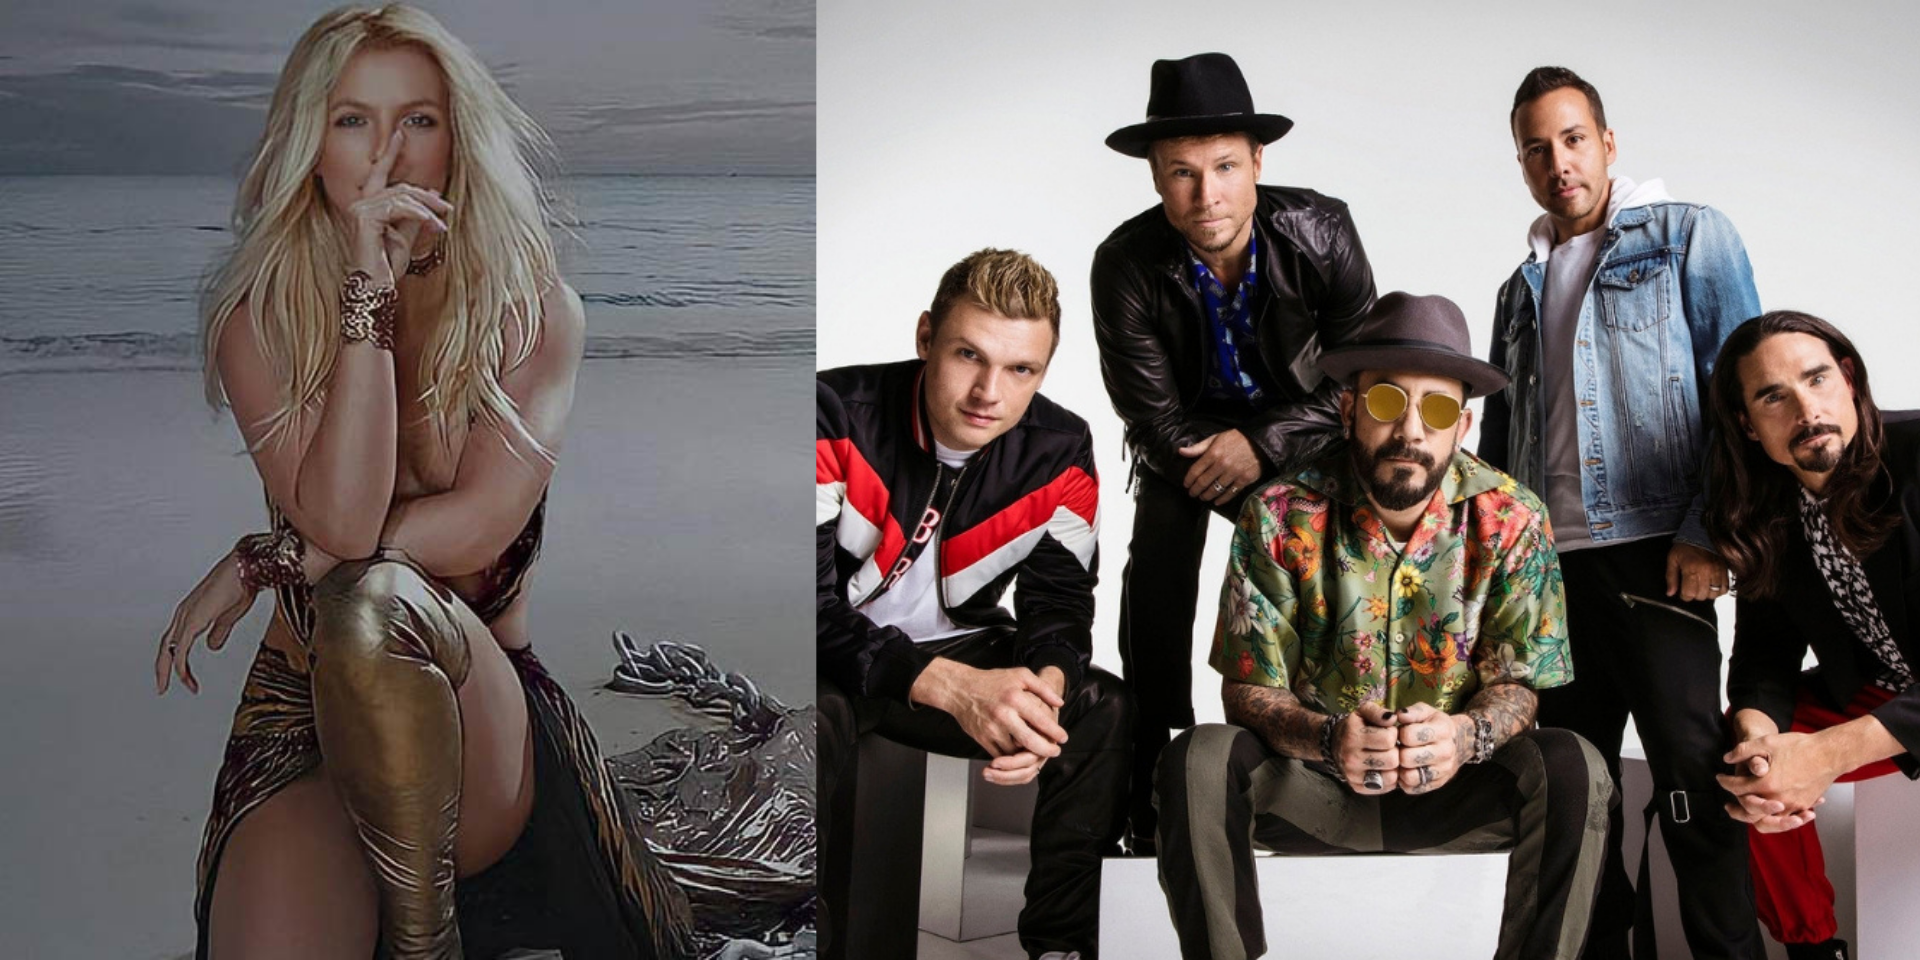 Britney Spears and the Backstreet Boys join forces on new collab track 'Matches' - listen